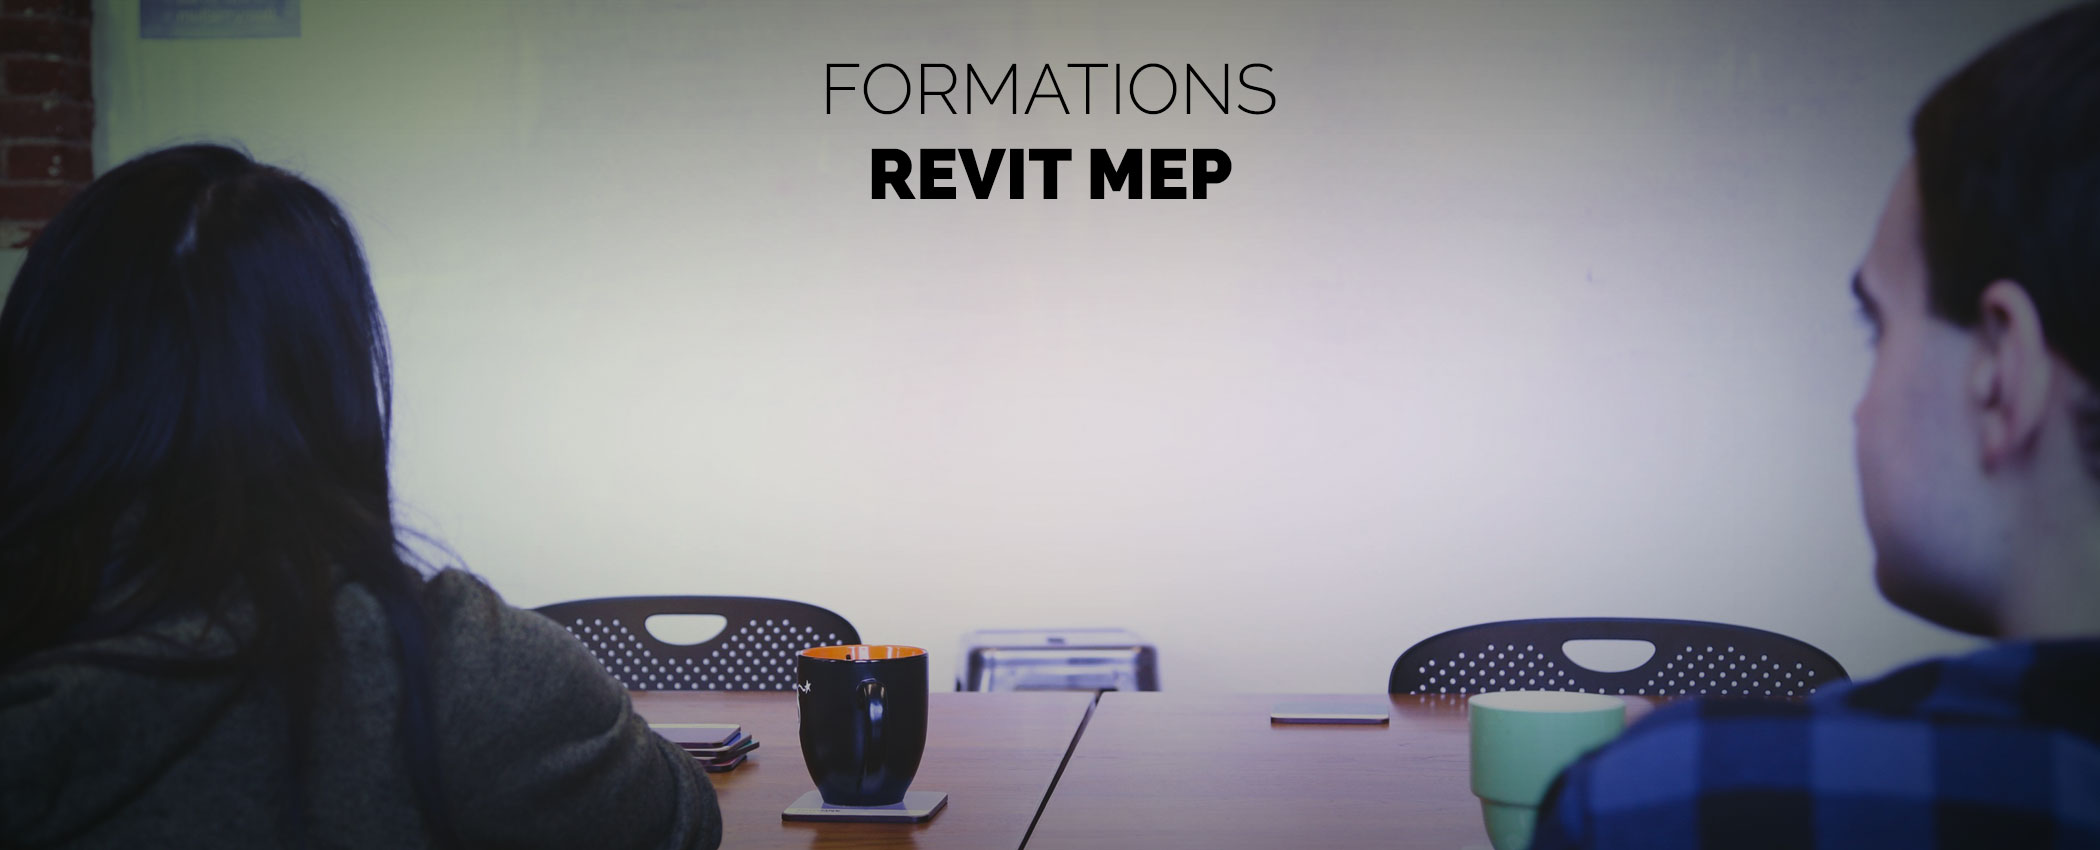 Formation Revit MEP